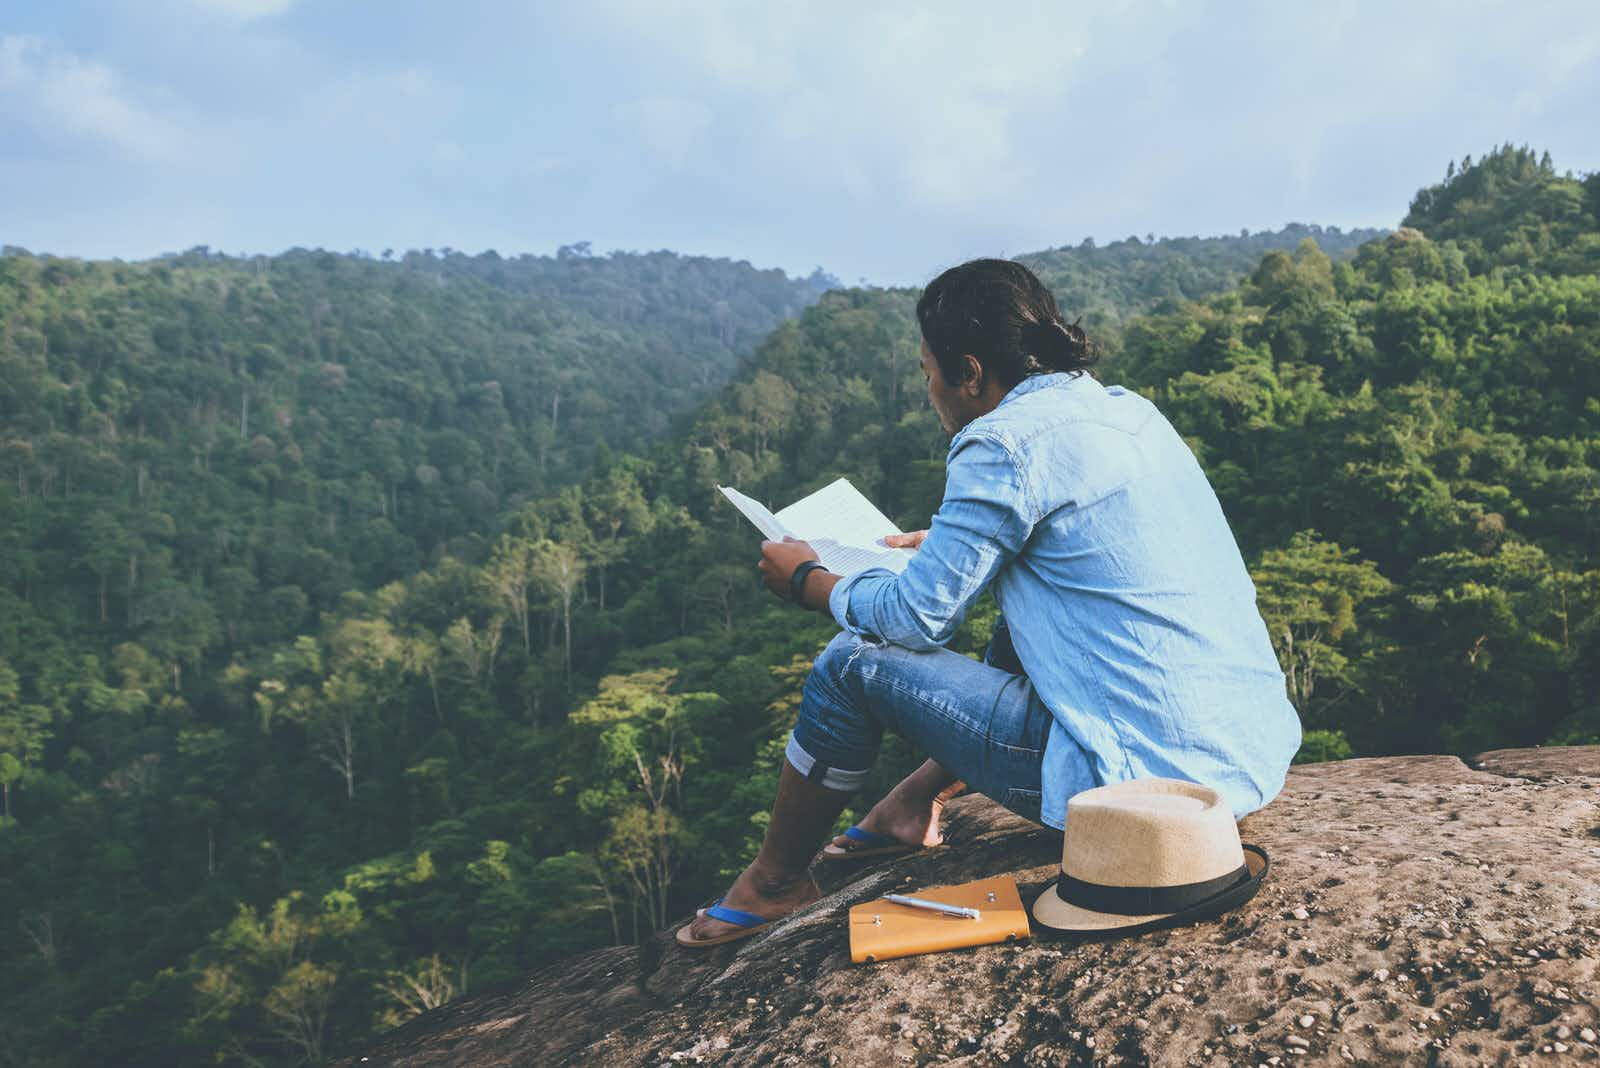 A person sitting on a rock reading a book next to a notepad, pen and hat. The person is wearing a denim shirt, jeans and flip flops and beyond the rock there is a view of rolling greenery